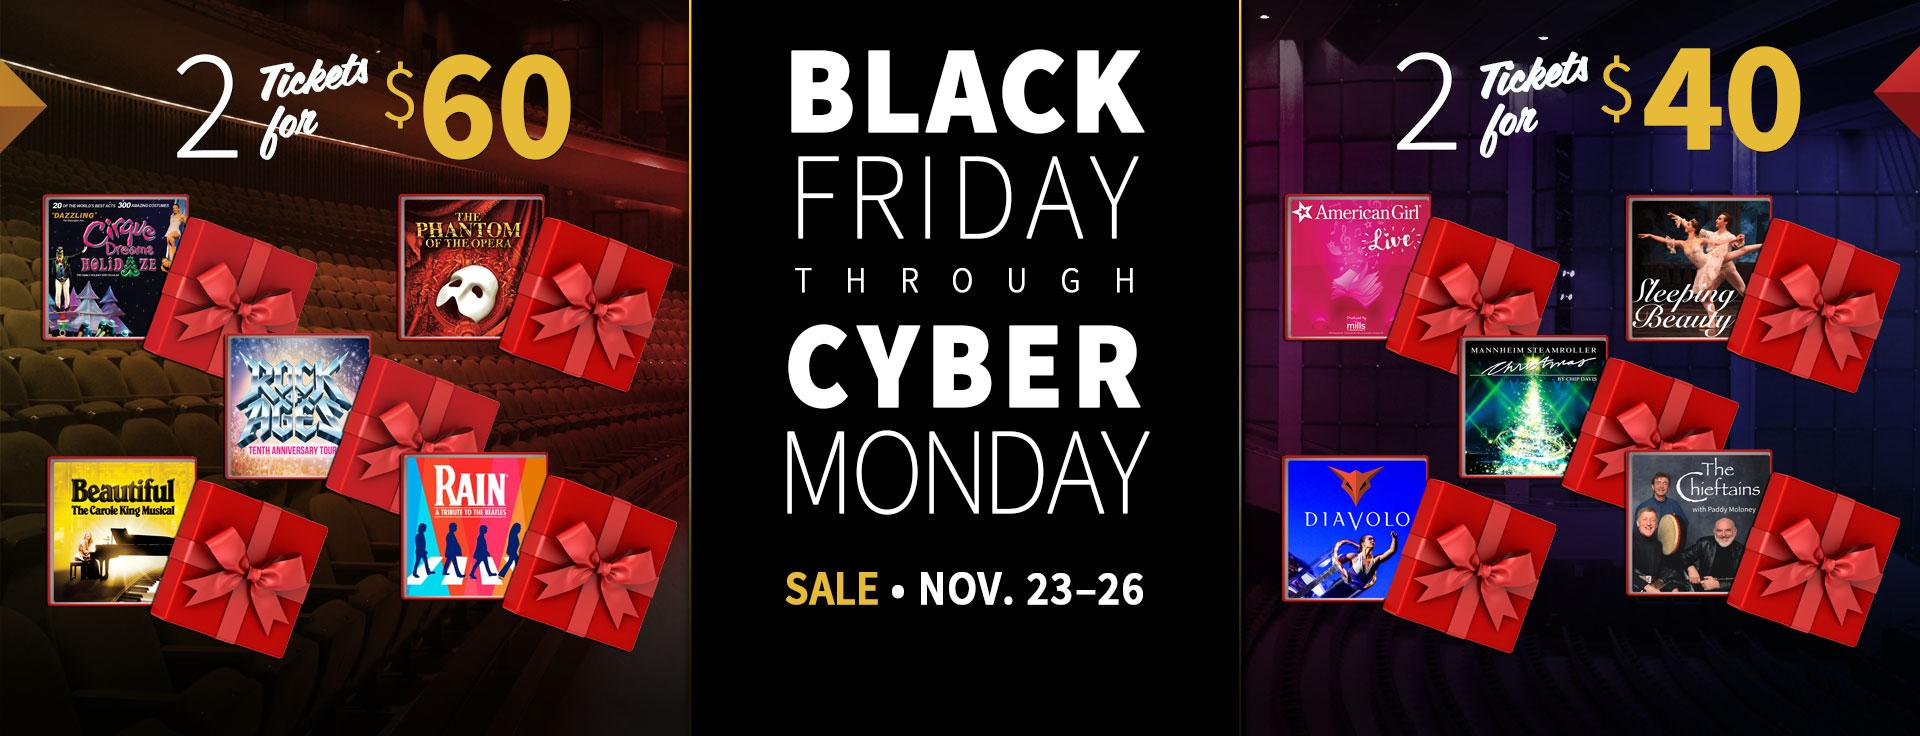 Sale Black Friday 2018 Black Friday Through Cyber Monday Sale Miller Auditorium